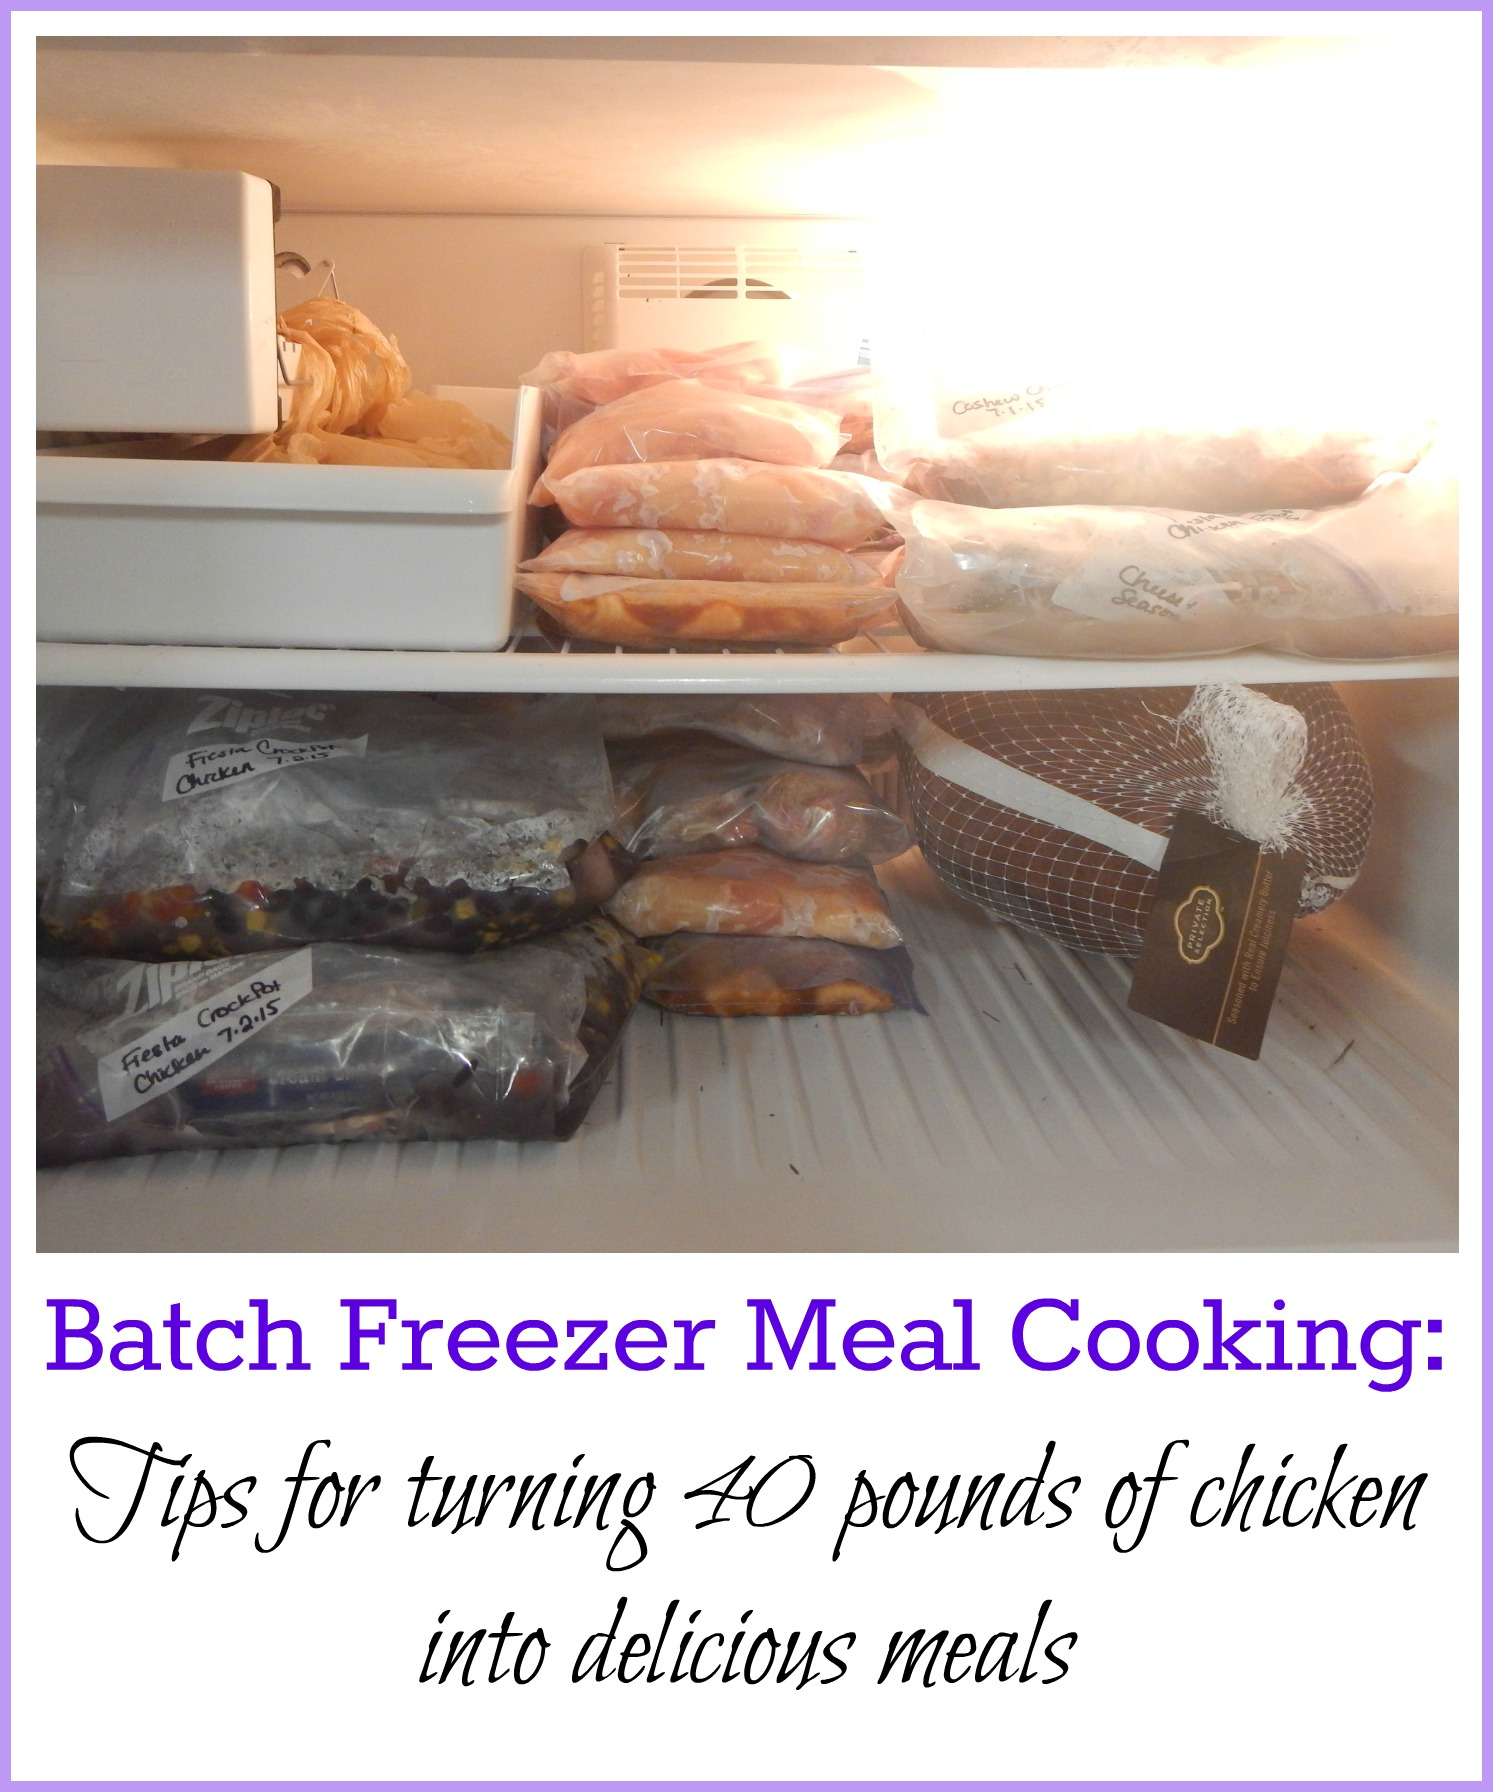 Batch Freezer Meal Cooking: Tips for Turning 40 pounds of chicken into delicious meals